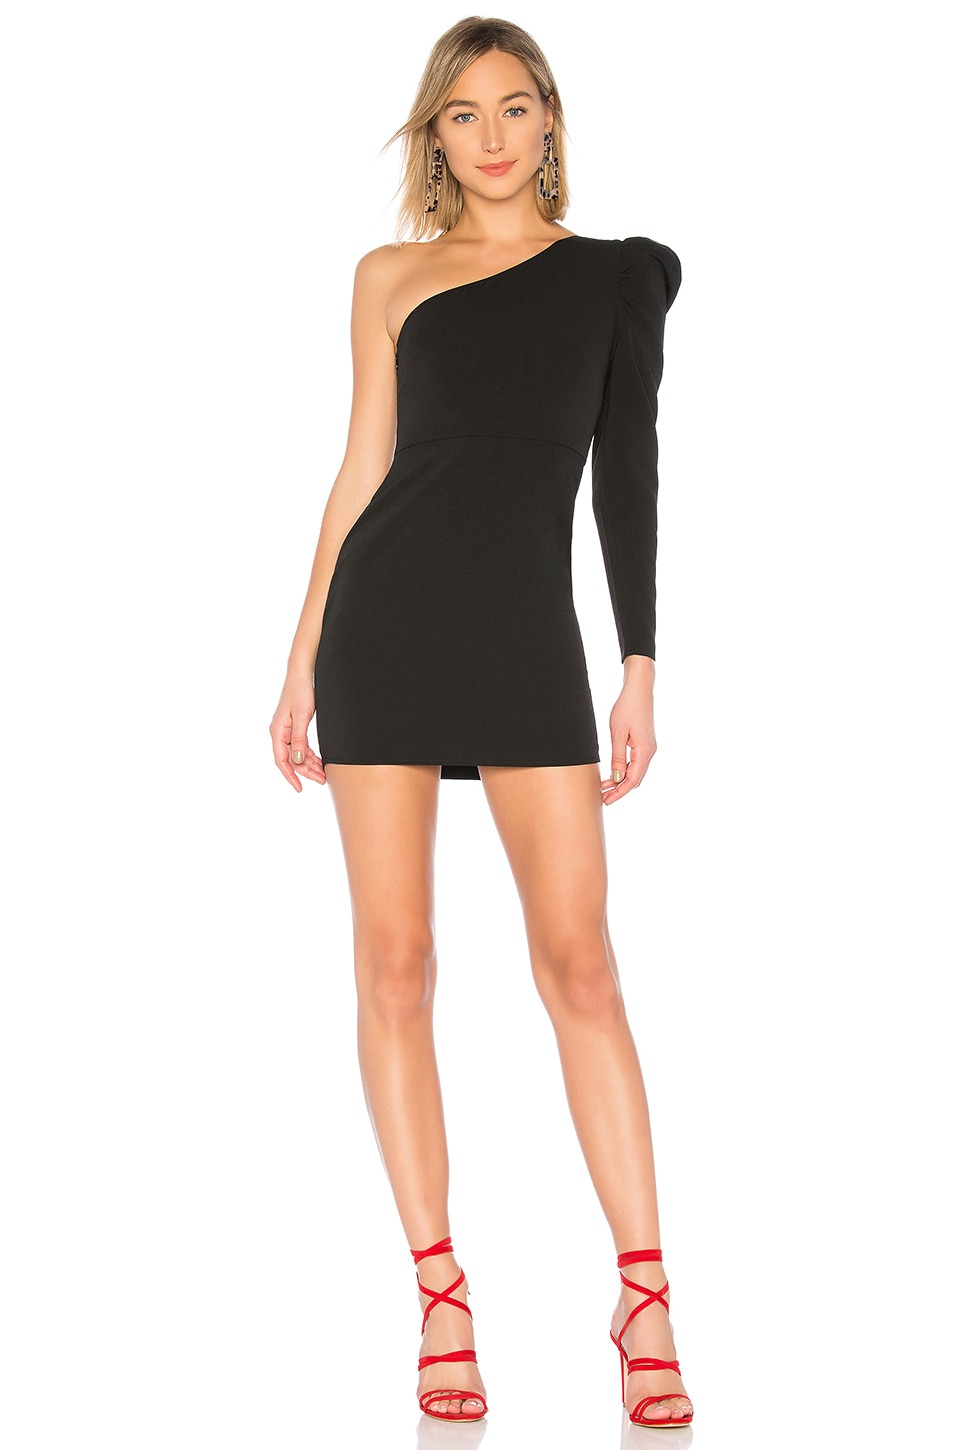 Lovers + Friends Nash Mini Dress in Black